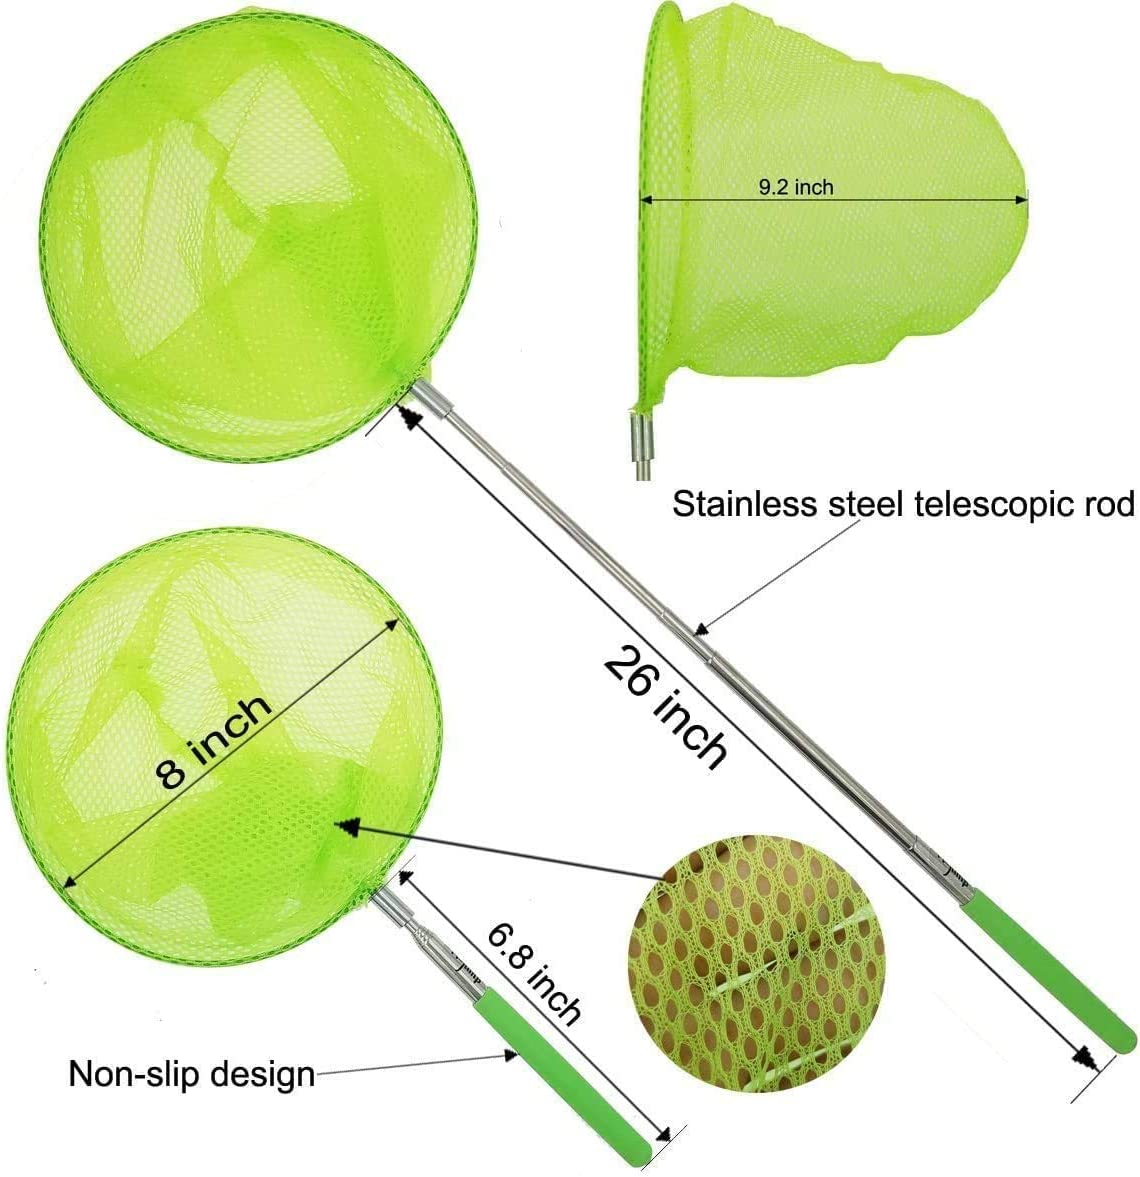 5 Pcs Childrens Insect Catch Mesh Fish Extendable Pole Sungkeen Butterfly Nets Fishing Nets for Kids Catching Insects Bugs Playing Outdoor